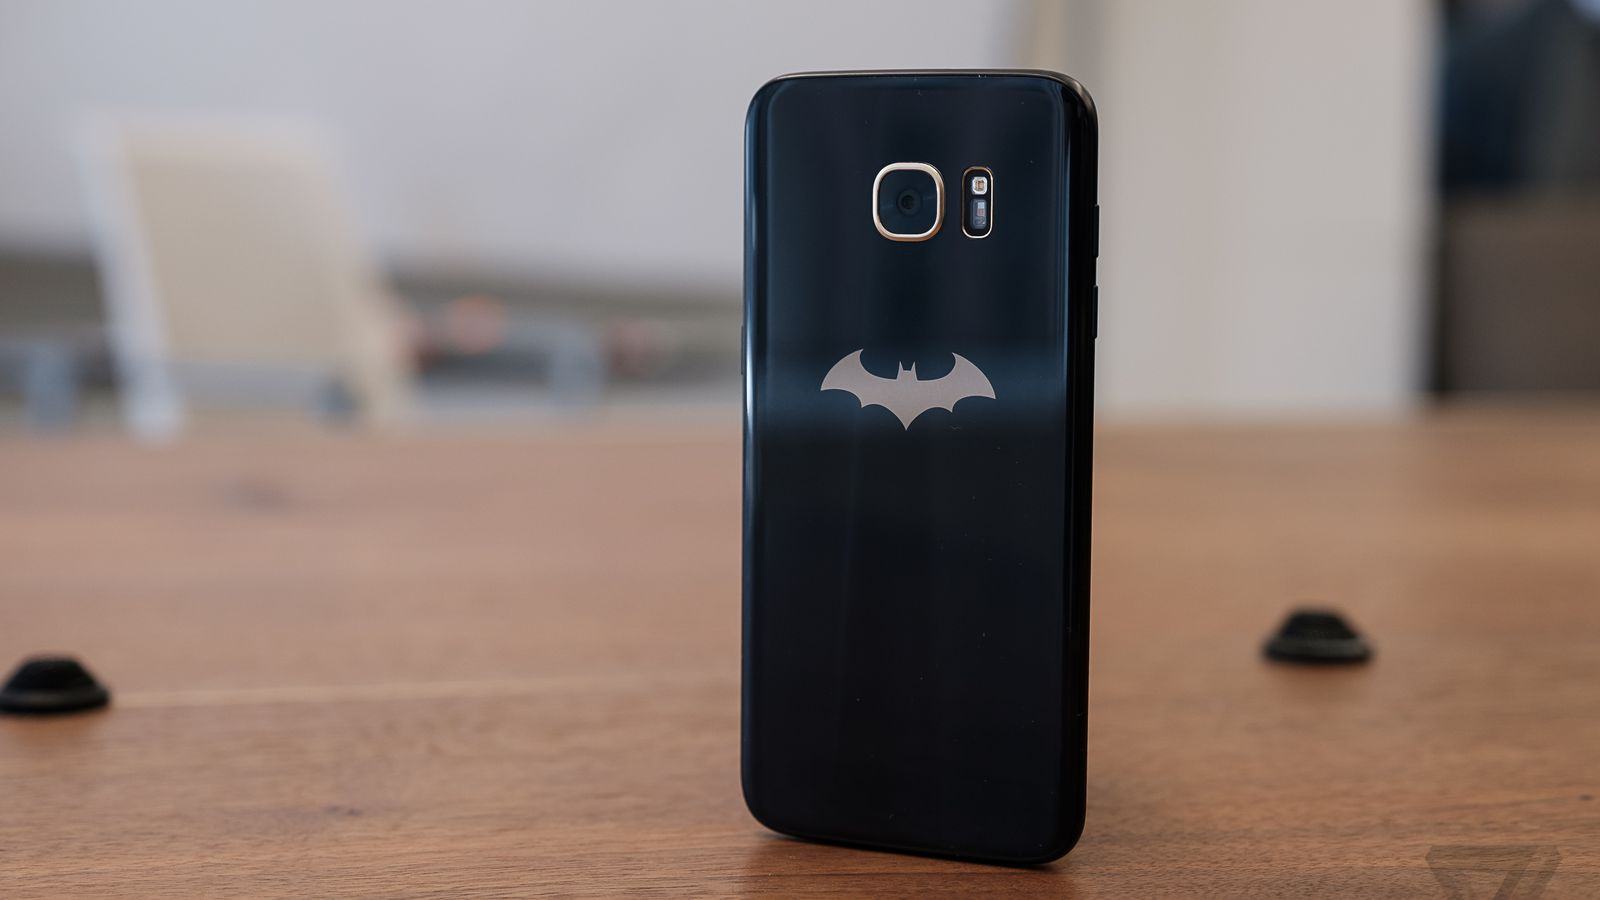 Samsung's Batman edition Galaxy S7 Edge is absurd and awesome at the